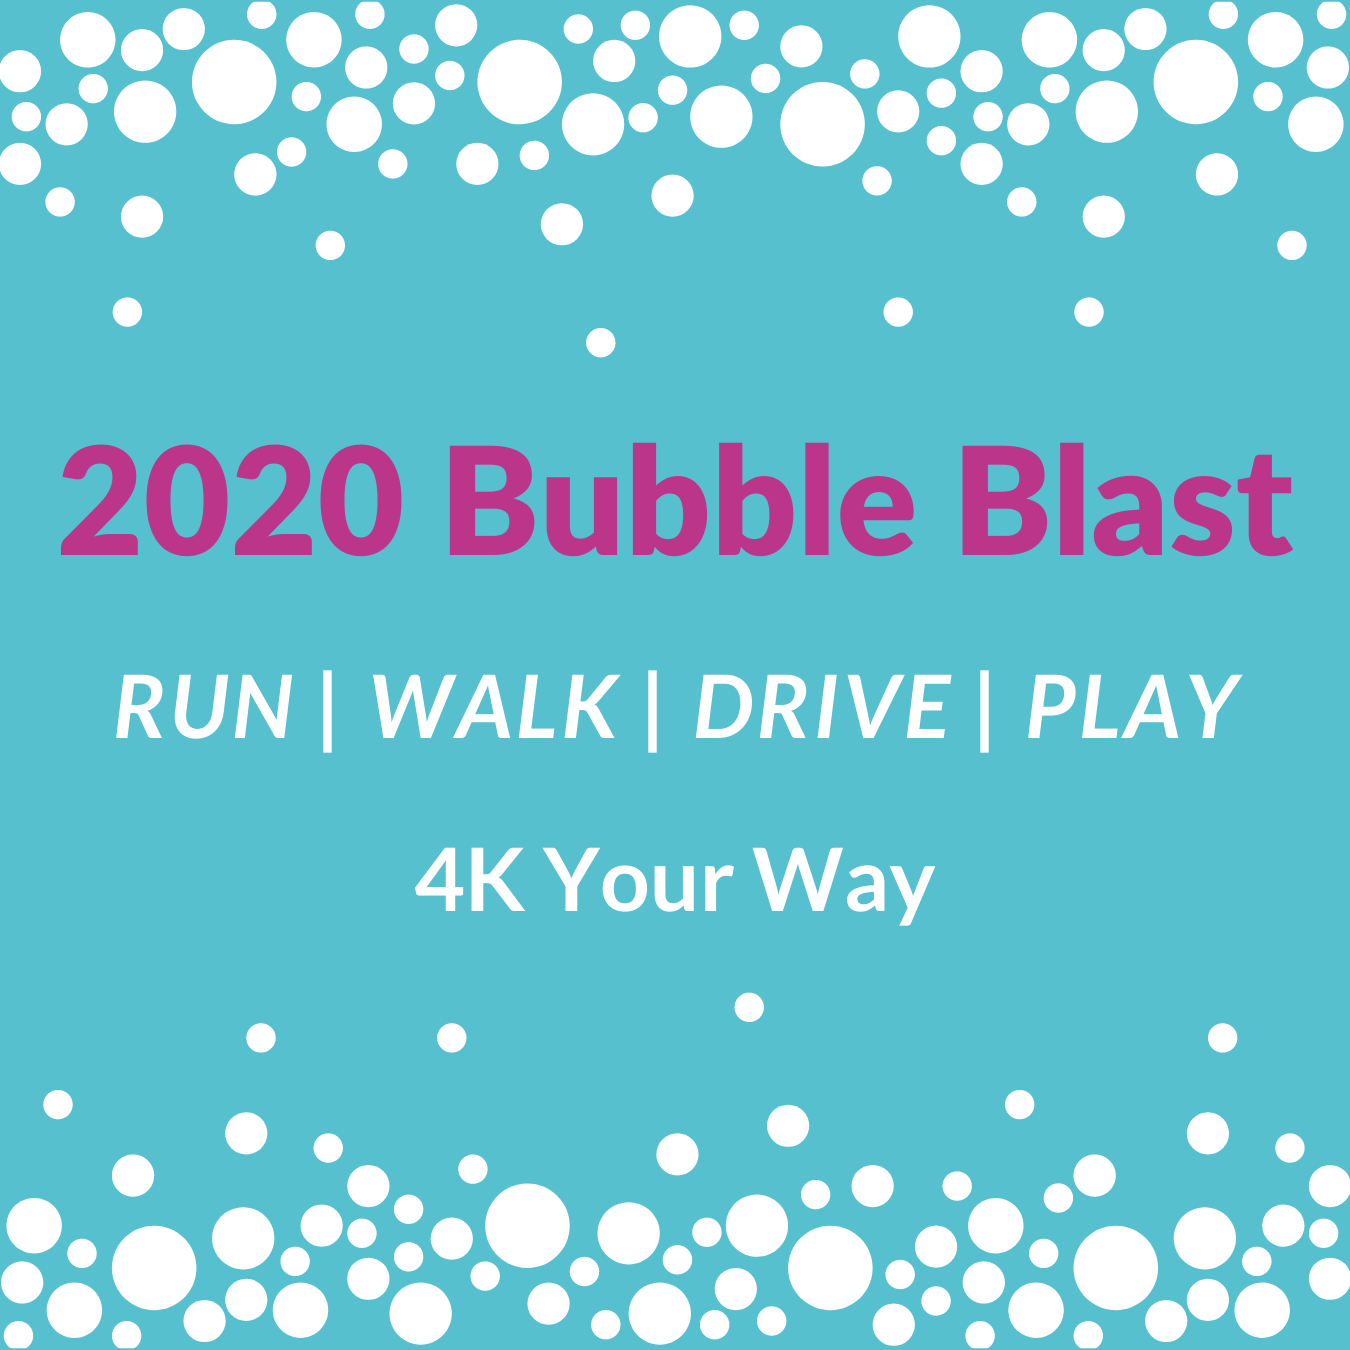 Bubble Blast FUNdraiser and 4K Your Way